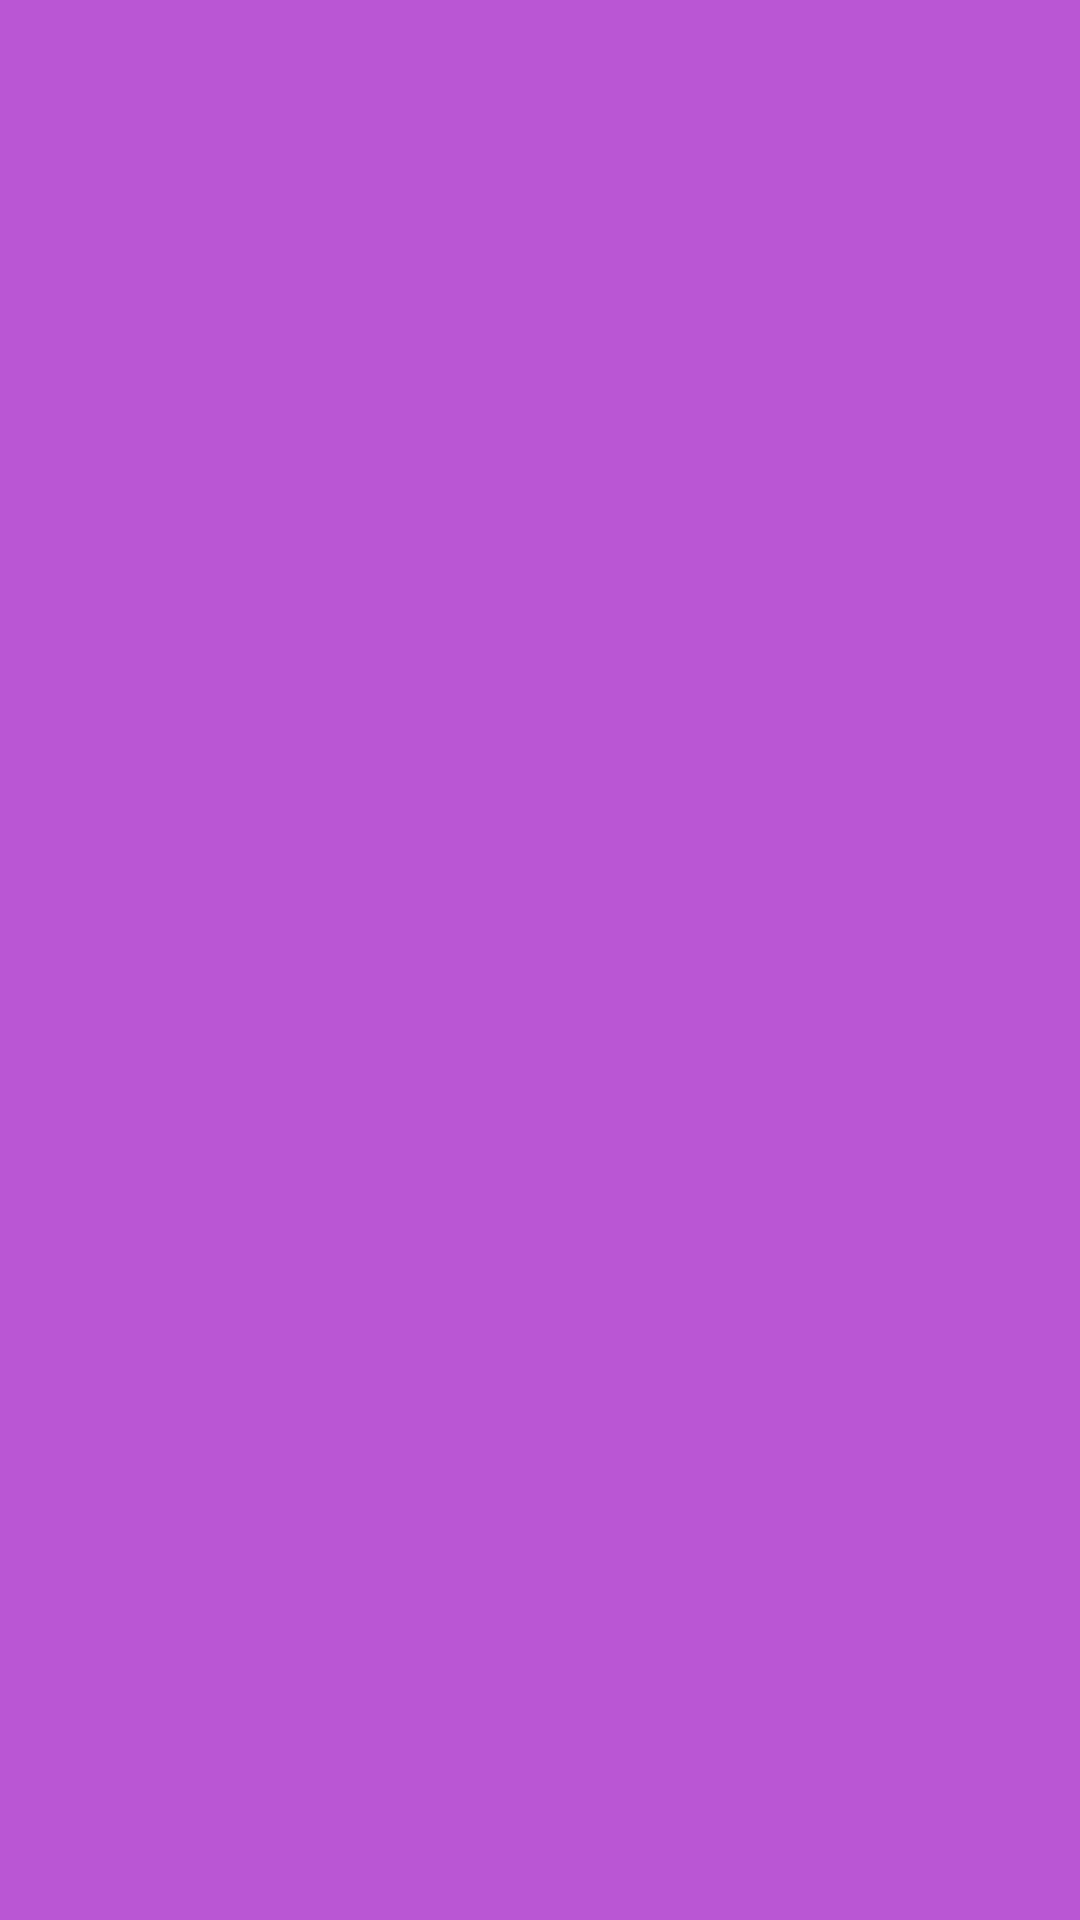 1080x1920 Medium Orchid Solid Color Background